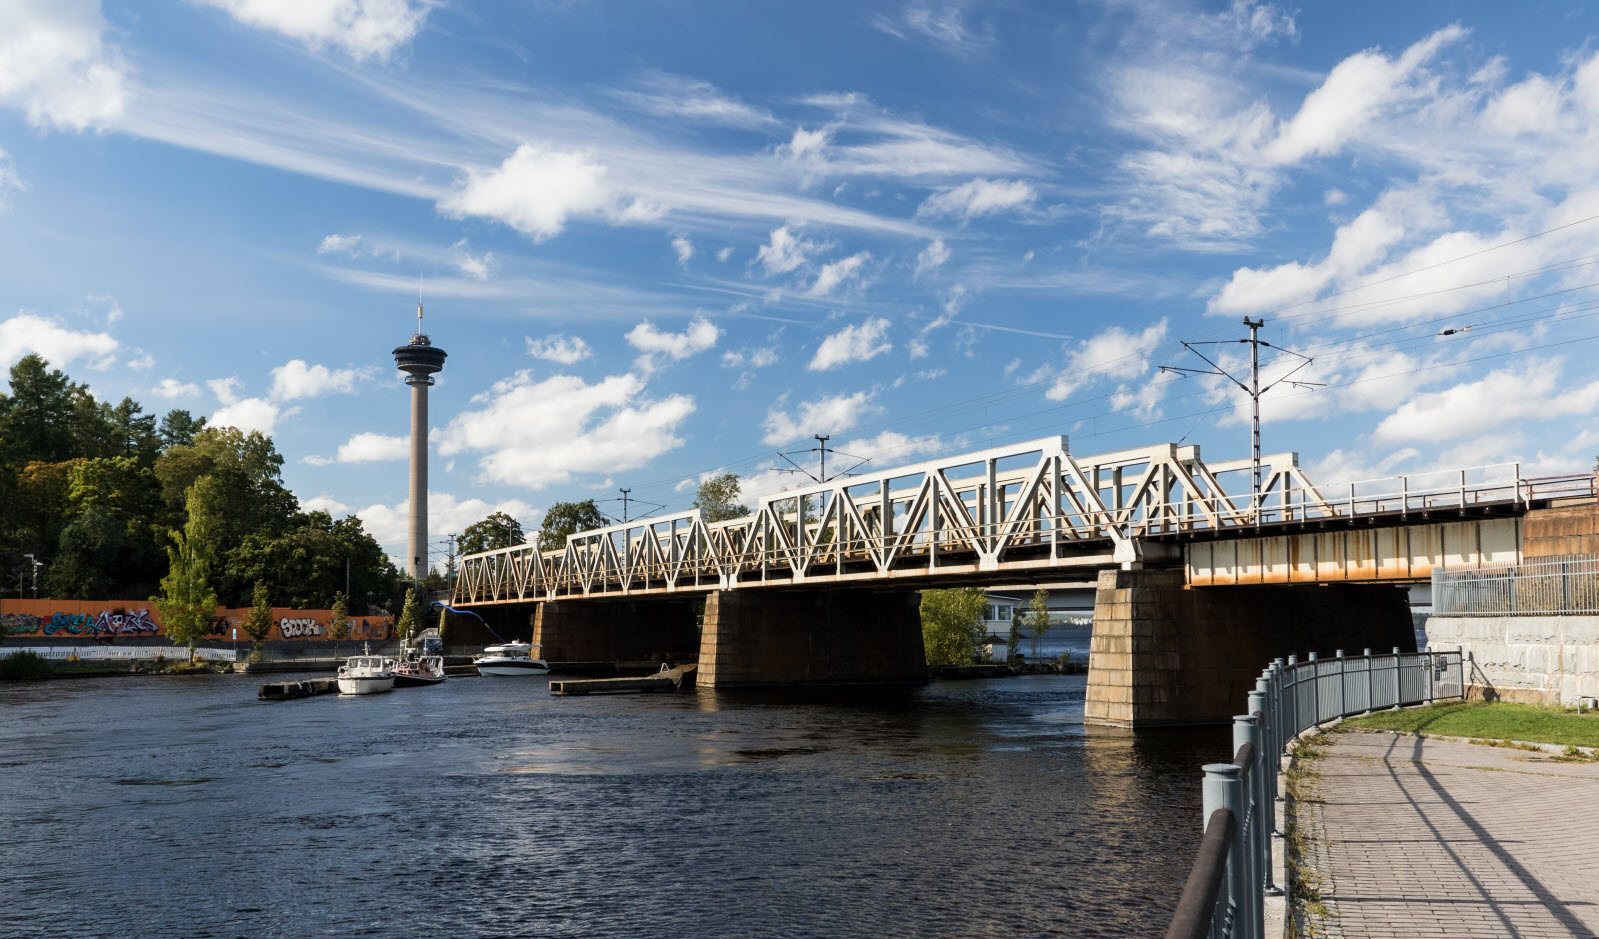 Tampere | Scandic Hotels